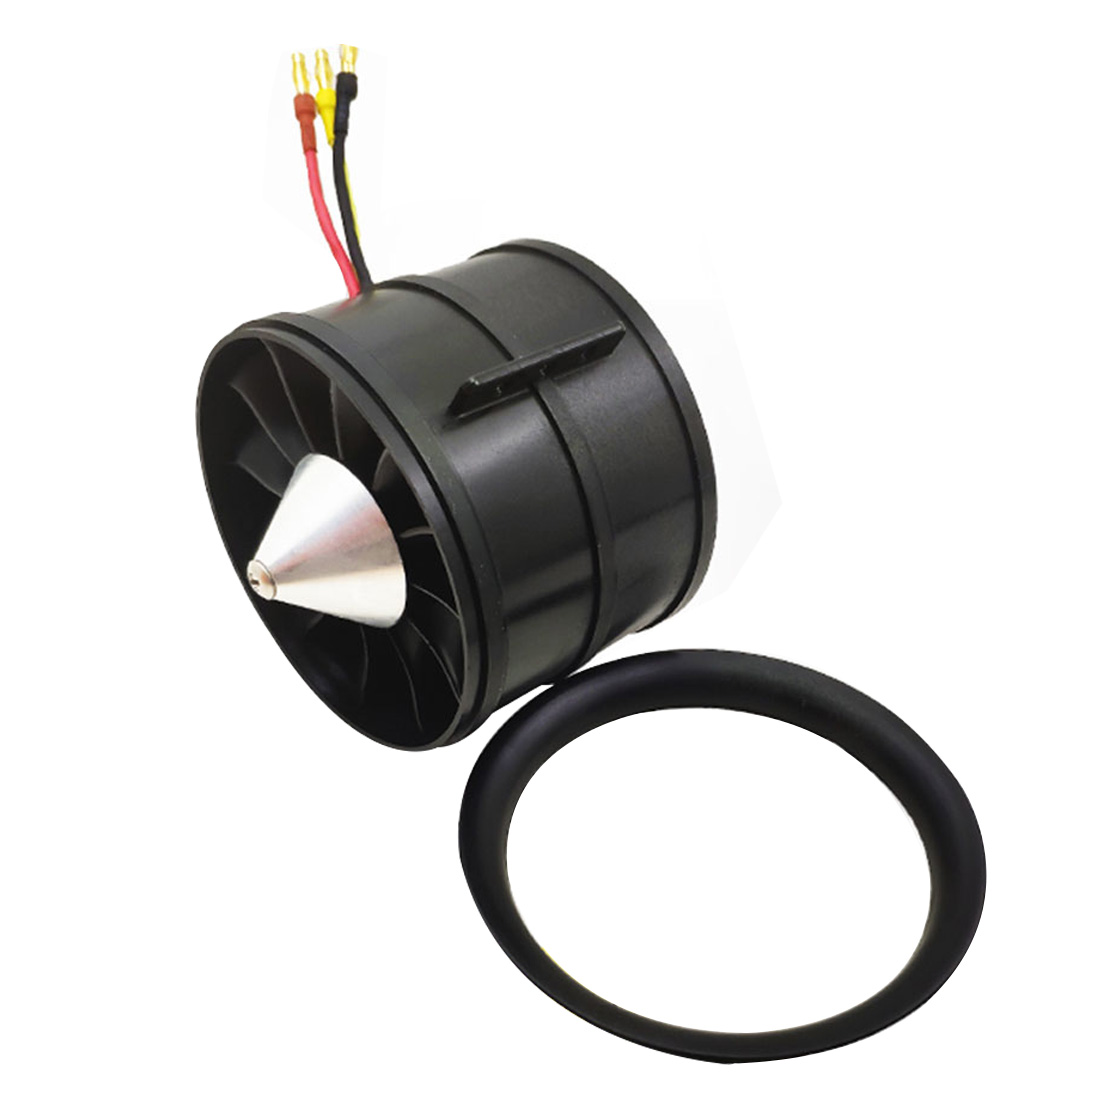 QX-MOTOR DIY EDF Ducted Airplane Fan 90mm QF3530 w/ Brushless Motor 6S <font><b>1450KV</b></font> 1550 KV / 8S1200KV / 12S 1000KV for RC Drone image